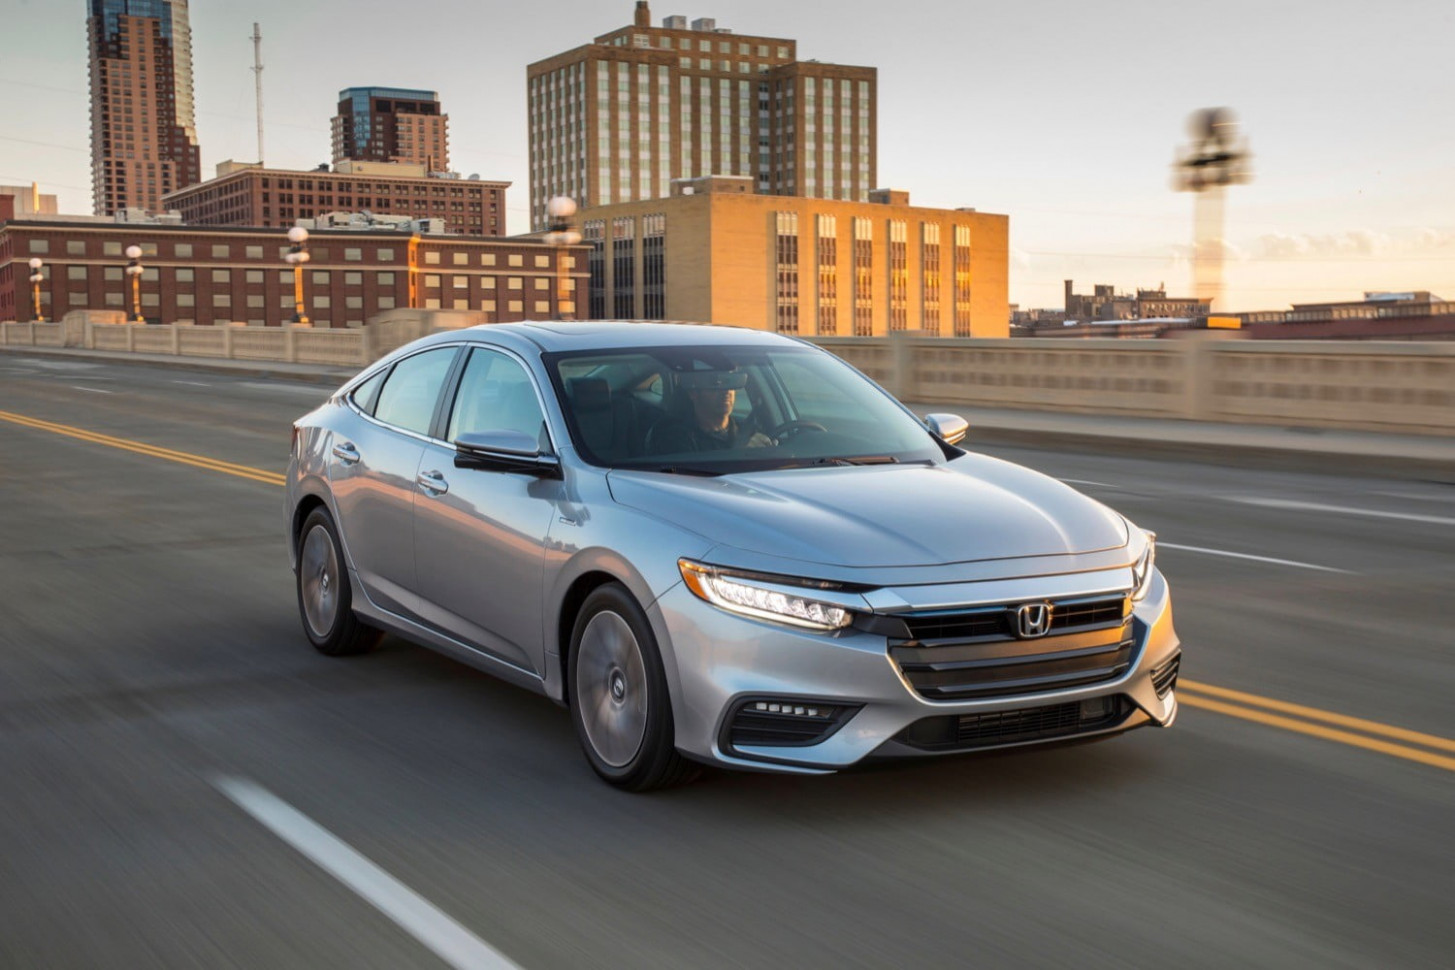 6 Honda Insight Remains a Hybrid That Flies Under the Radar - honda insight 2020 review